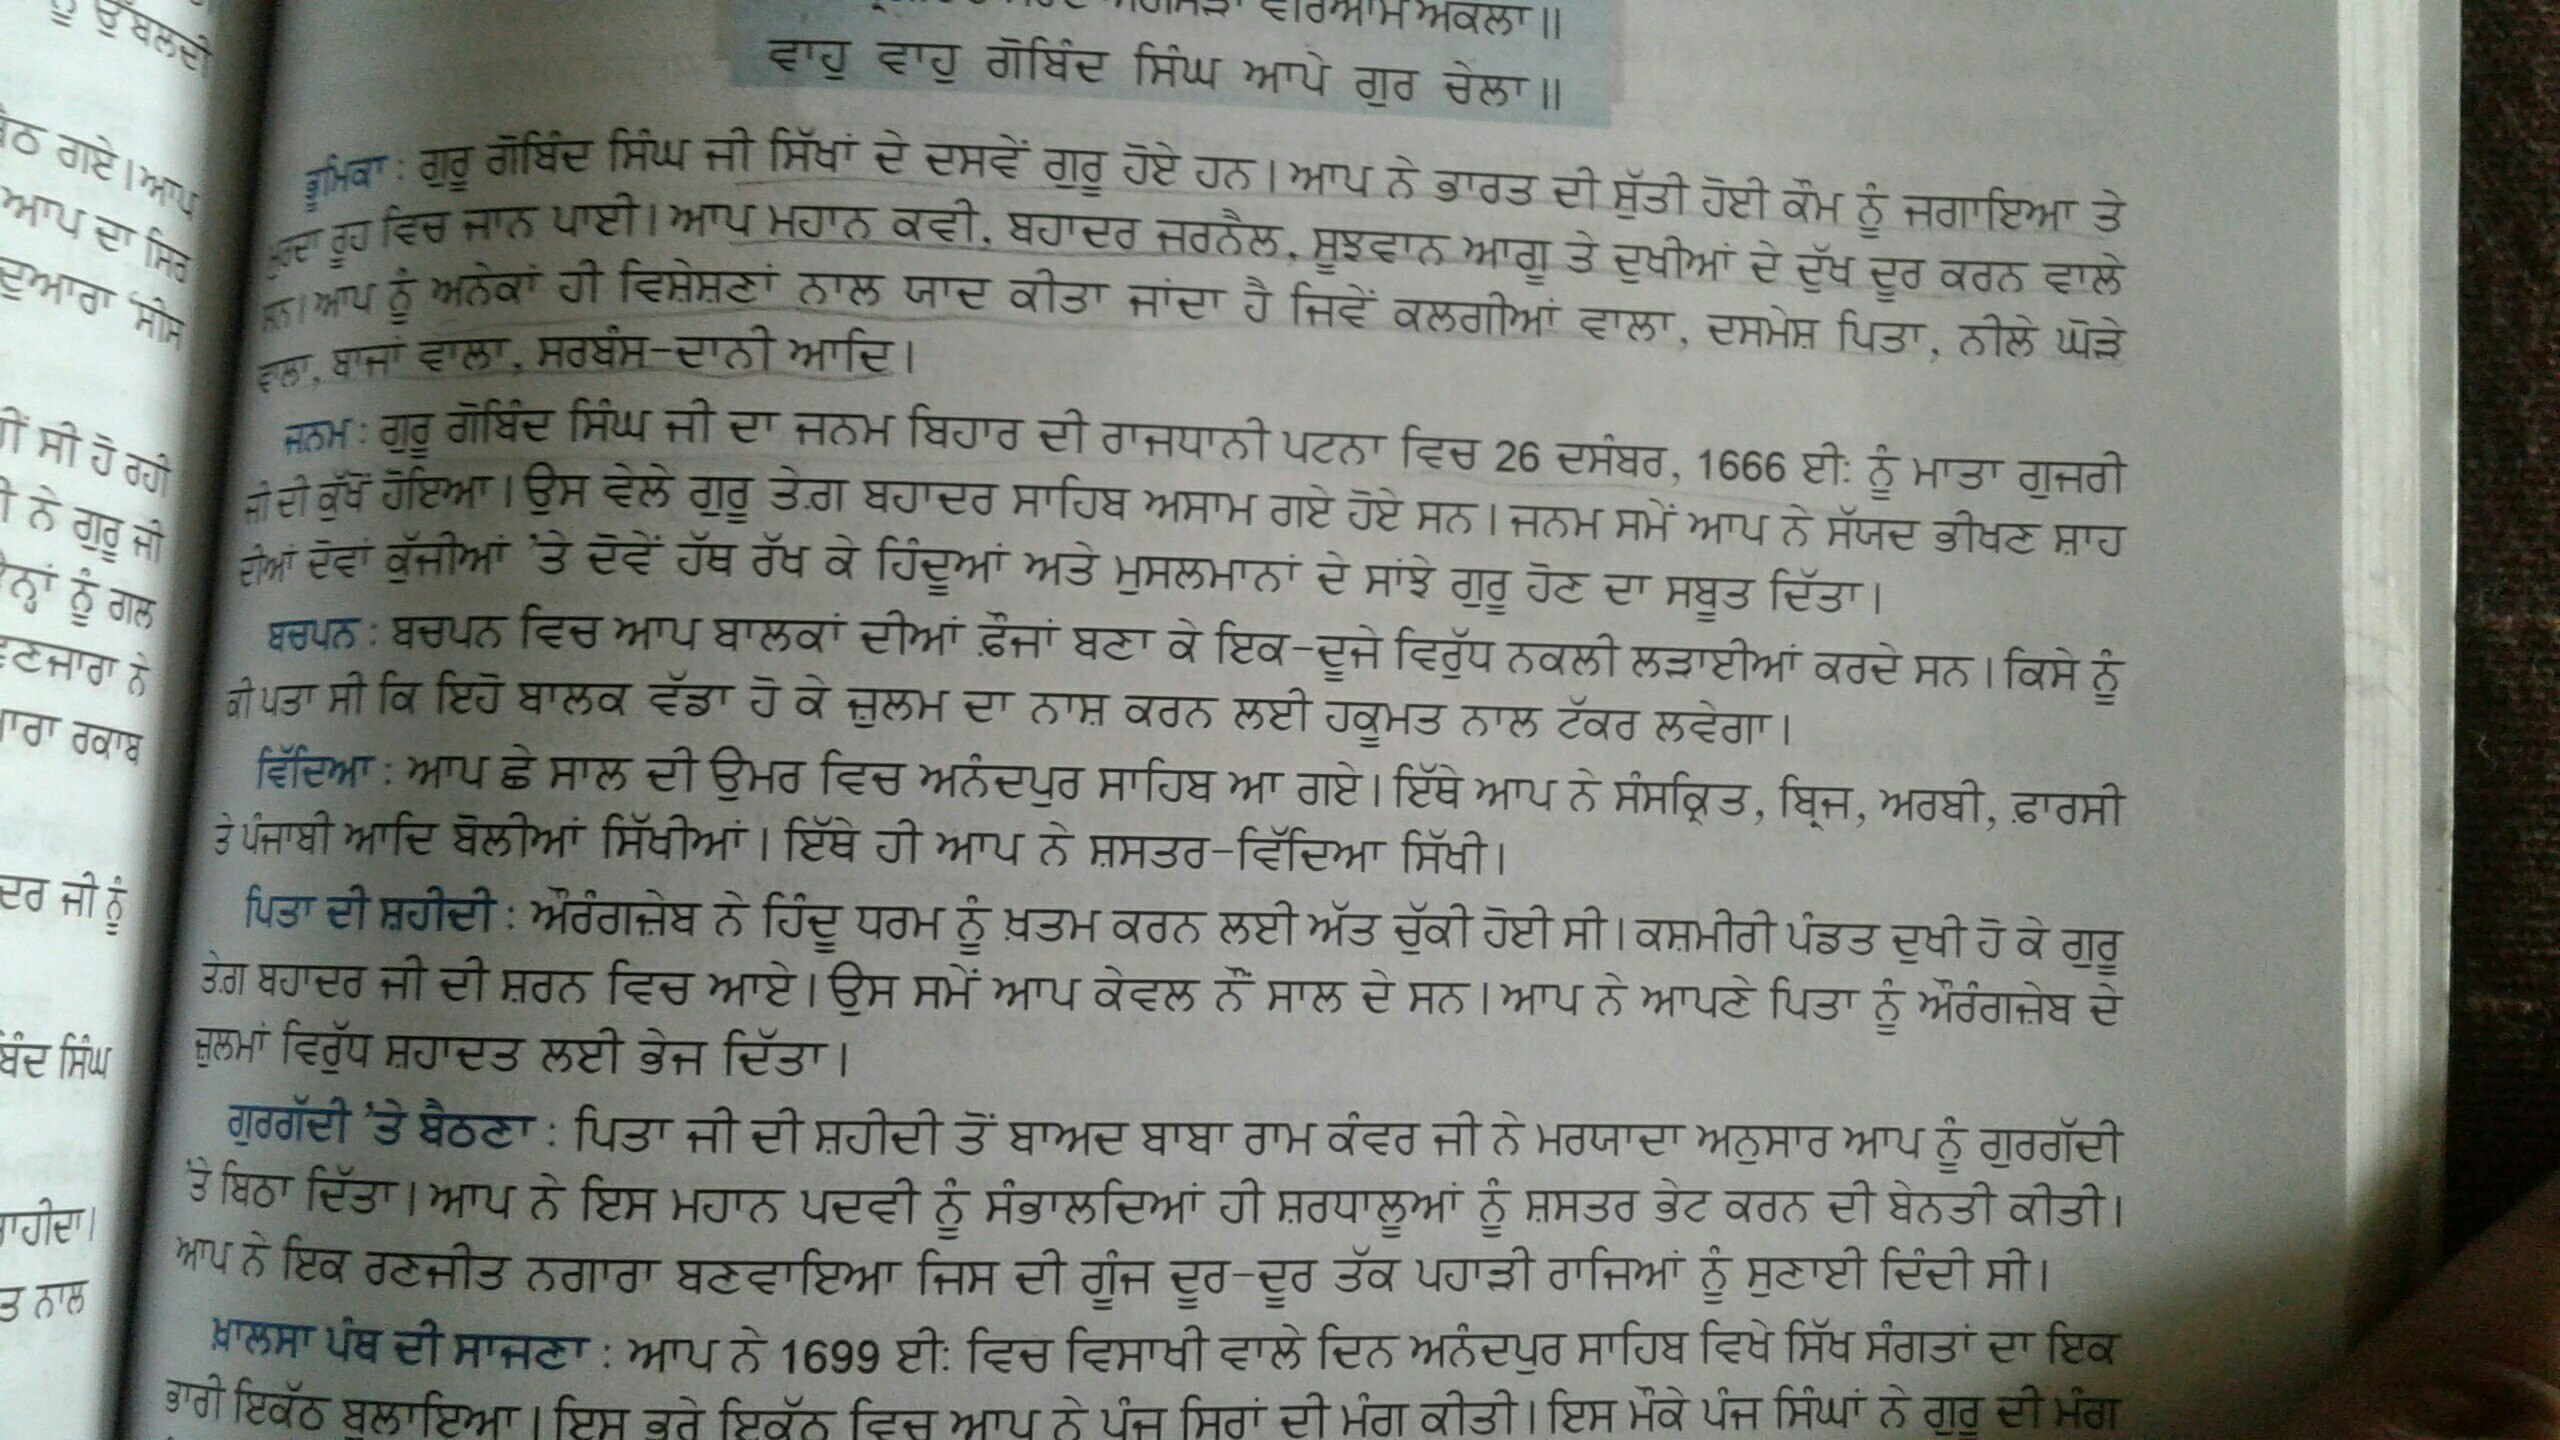 essay on guru gobind singh ji in punjabi language pdf